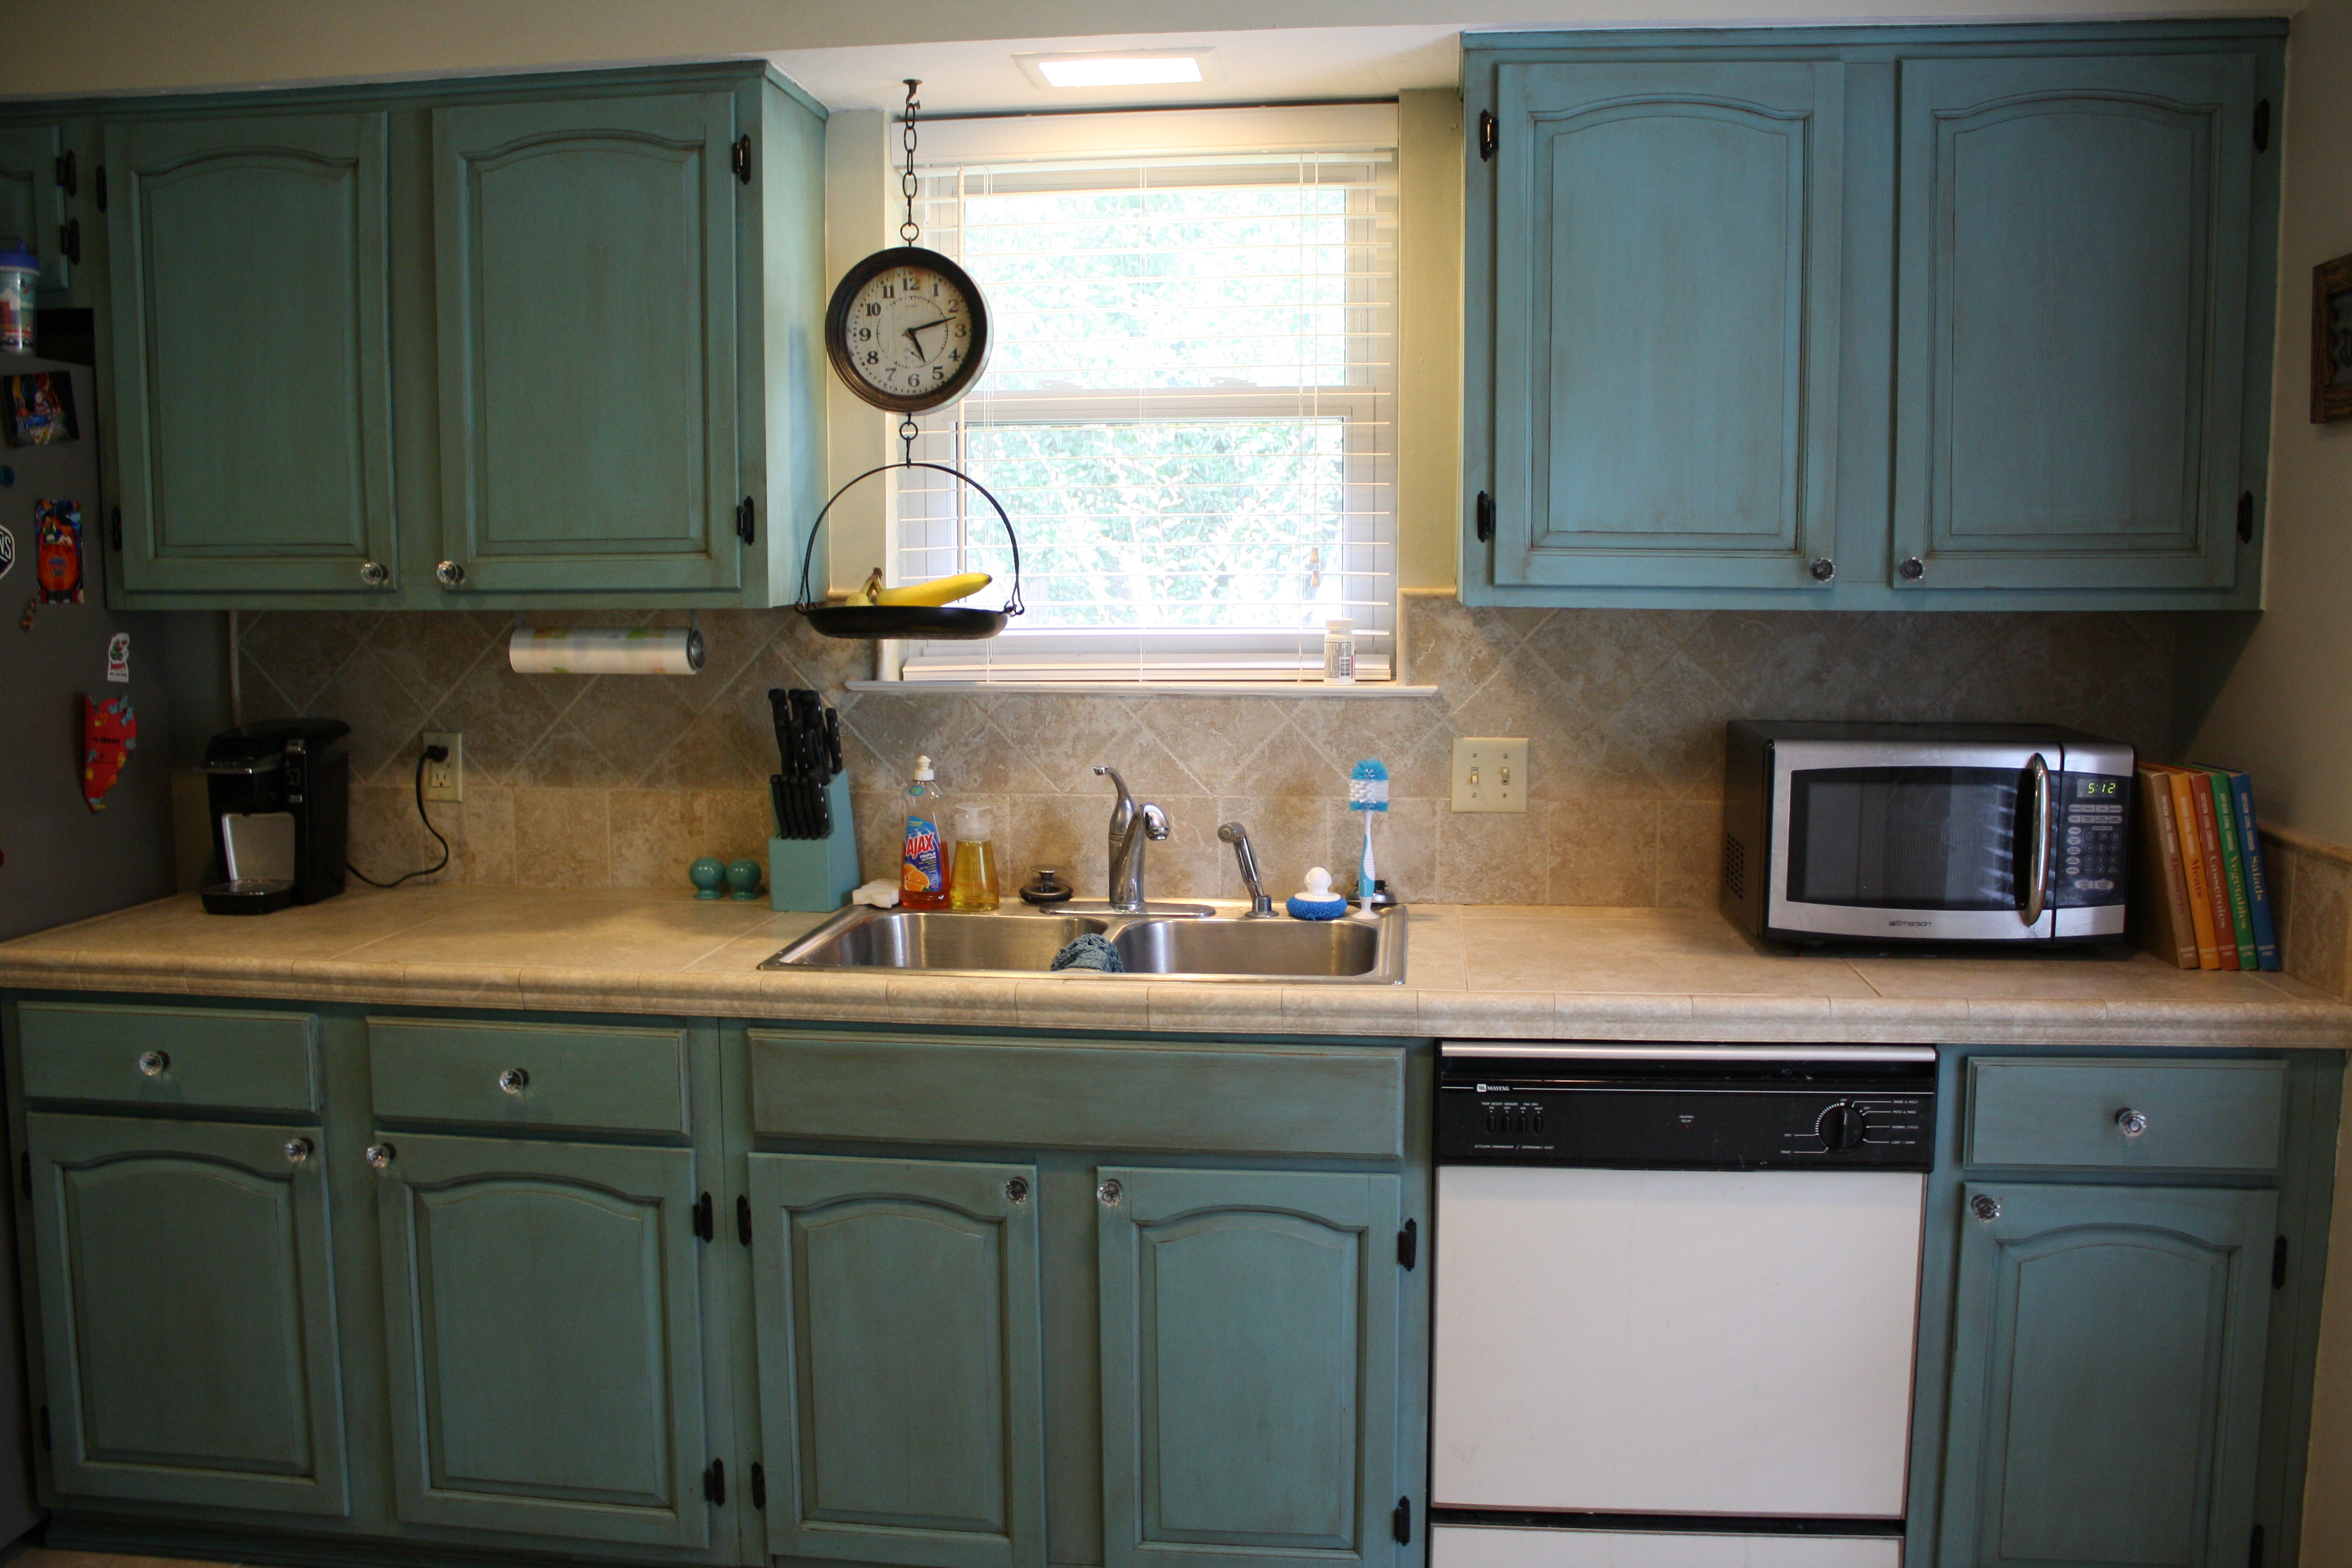 Painting kitchen cabinets with annie sloan chalk paint - Painted kitchen cabinets images ...